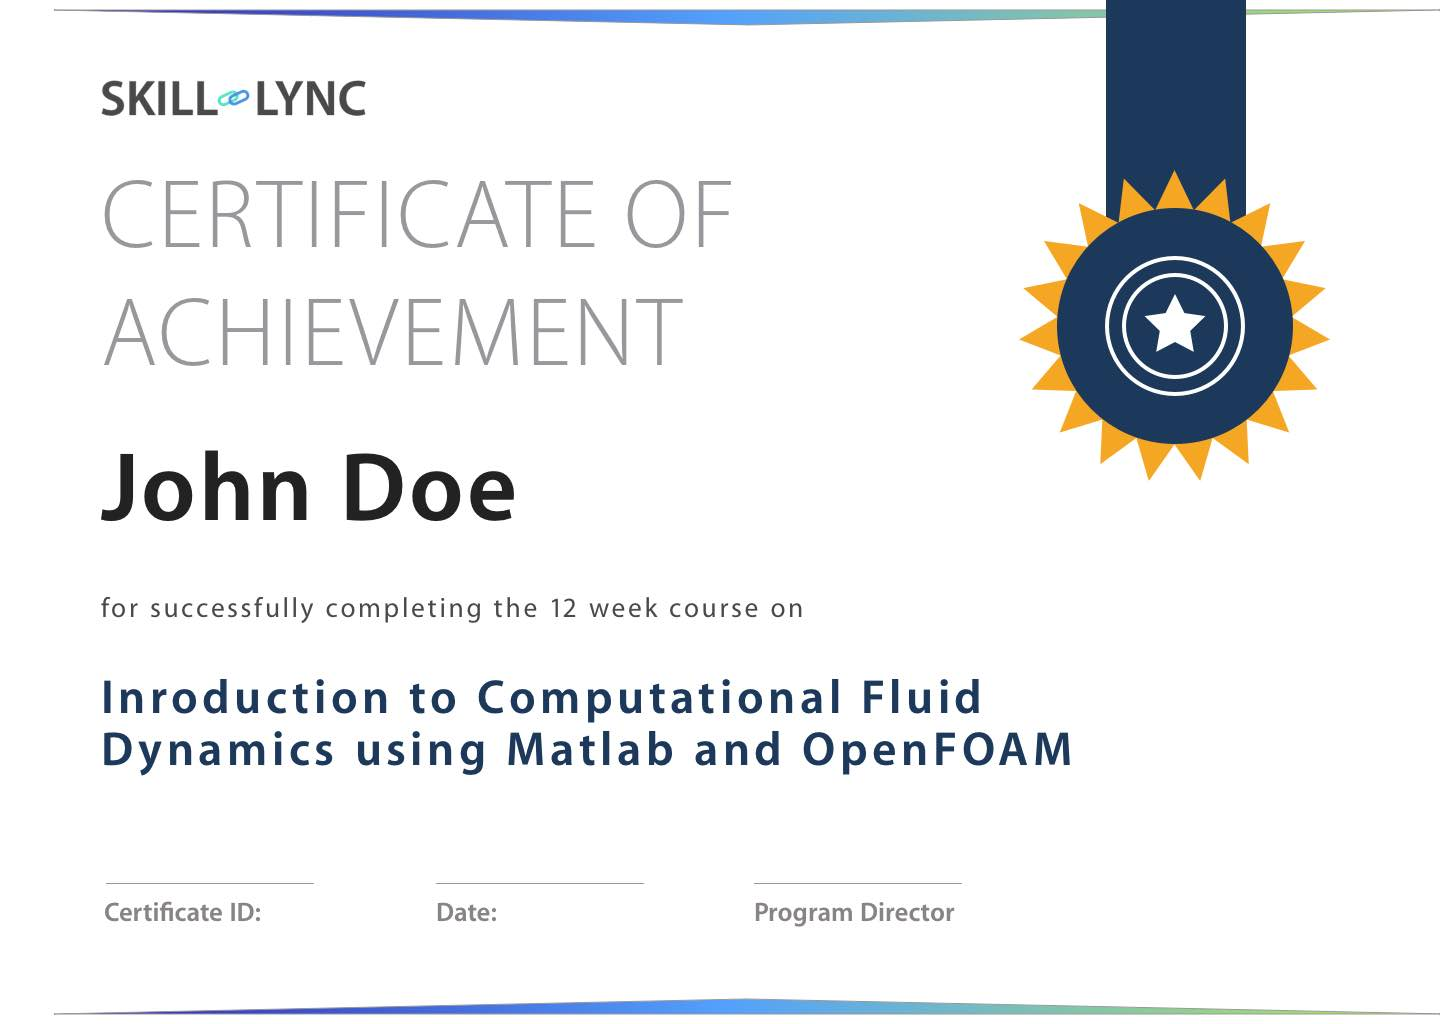 Introduction To Cfd Using Matlab And Openfoam Courses Skill Lync